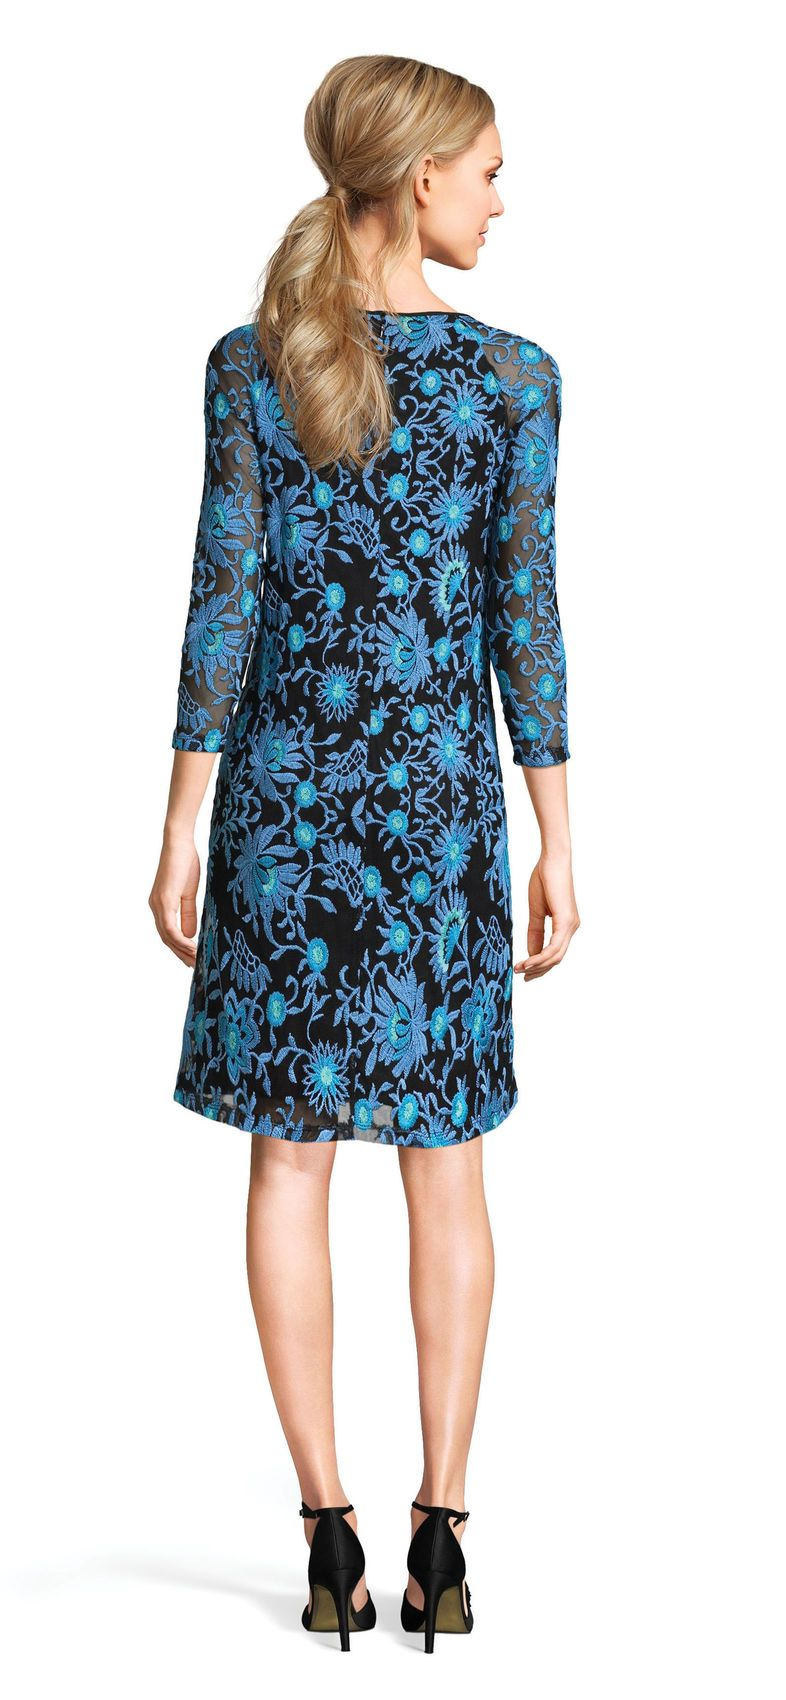 Adrianna Papell - AP1D100673 Embroidered Quarter Sleeve Sheath Dress In Blue